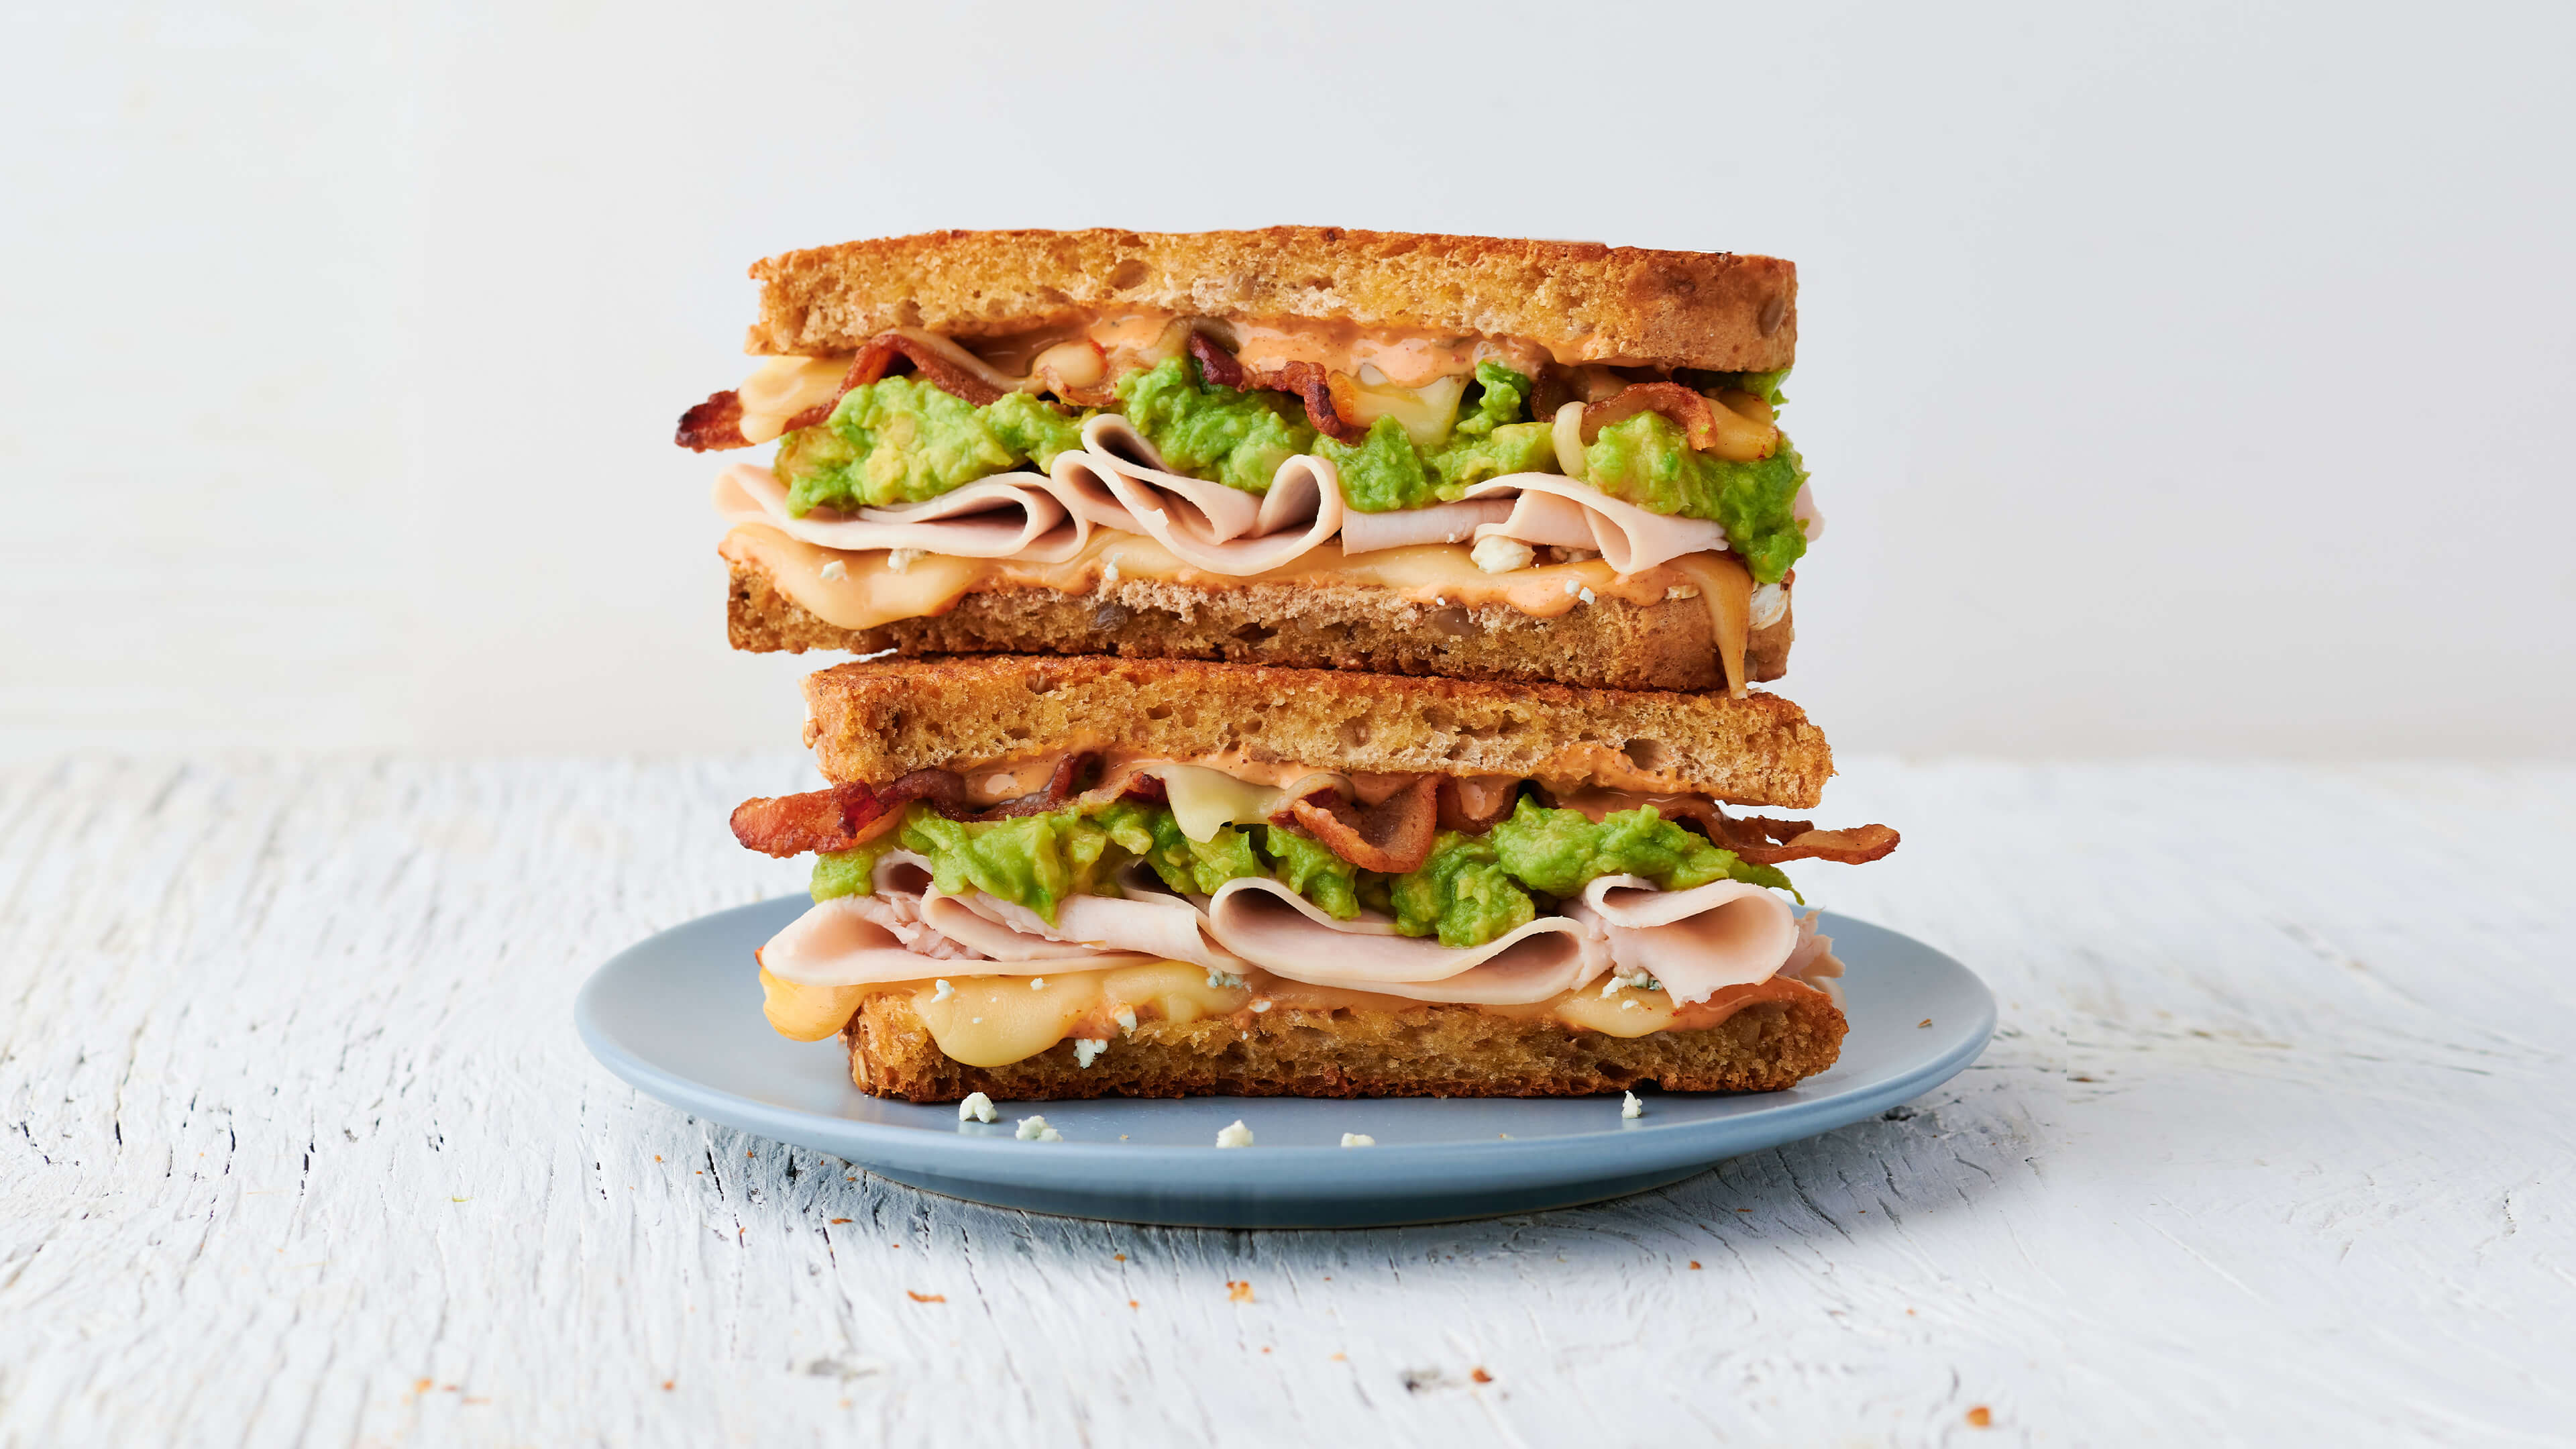 Roasted turkey, bacon, muenster cheese, blue cheese crumbles, avocado spread & Society Sauce on choice of bread